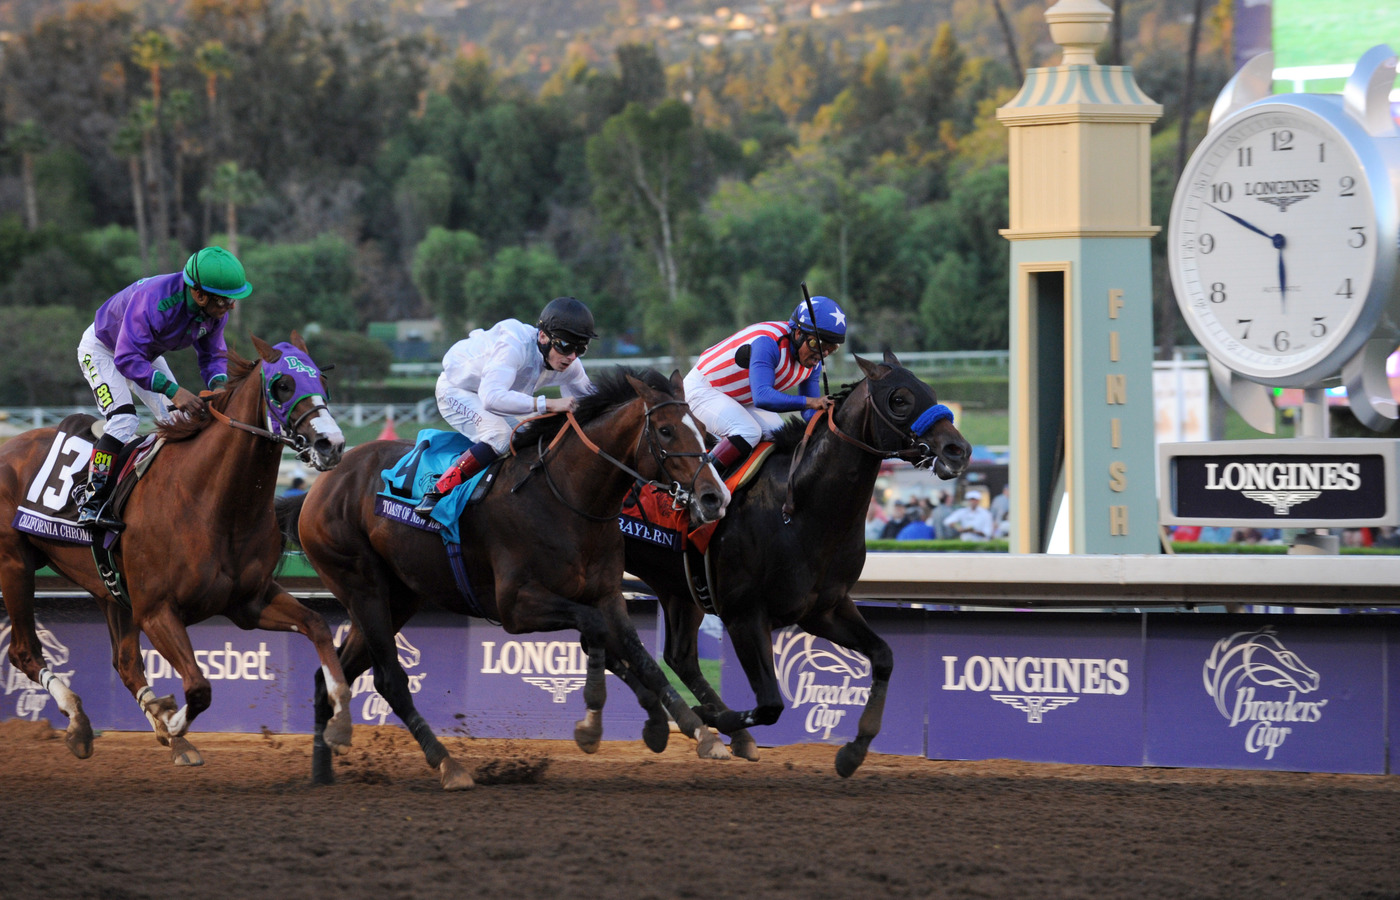 Longines Flat Racing Event: Longines Times the Breeders' Cup World Championships 3